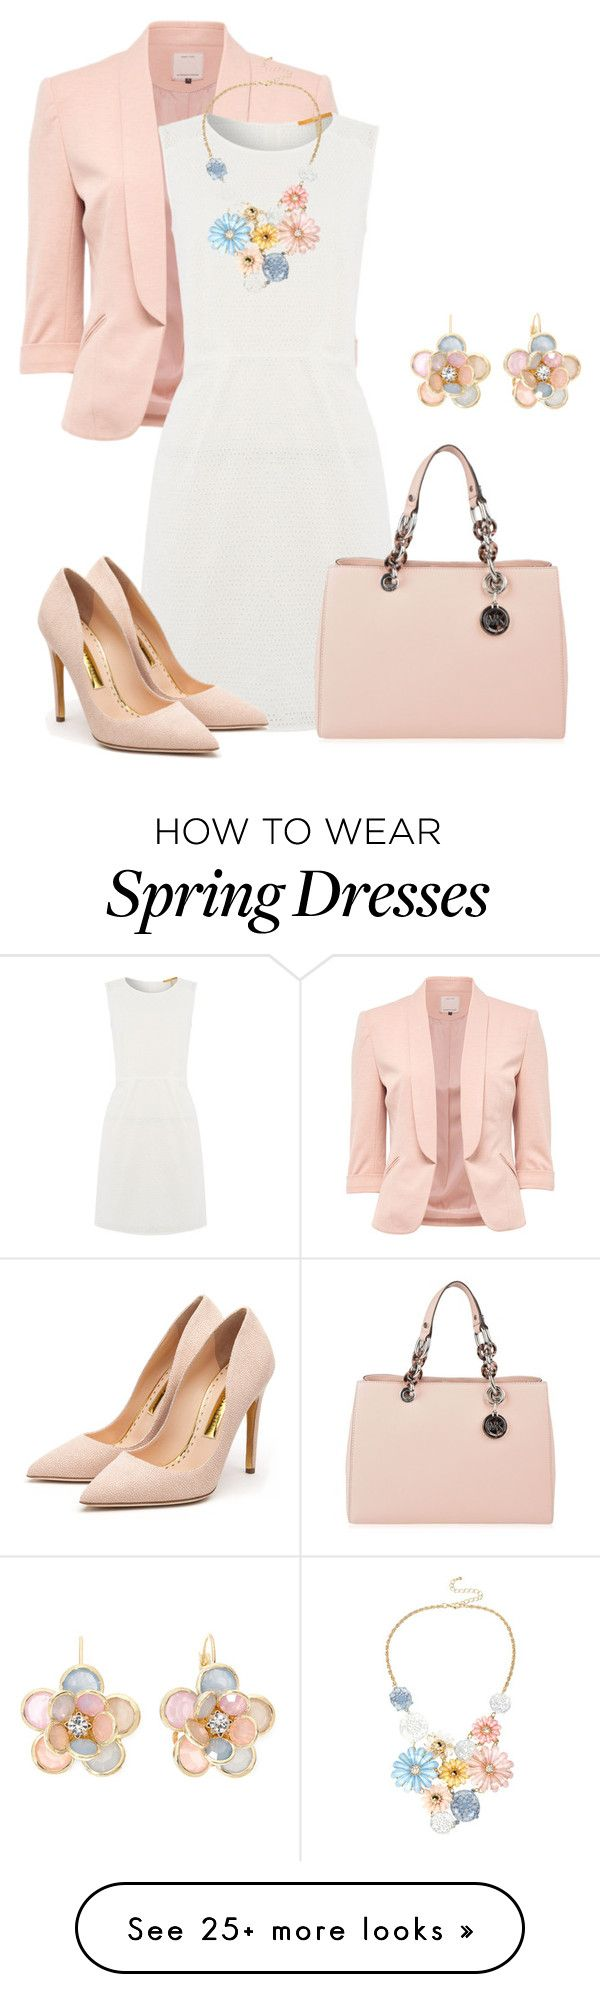 """""""White Dress for Spring"""" by lchar on Polyvore featuring HUGO, MICHAEL Michael Kors, Rupert Sanderson and Mixit"""